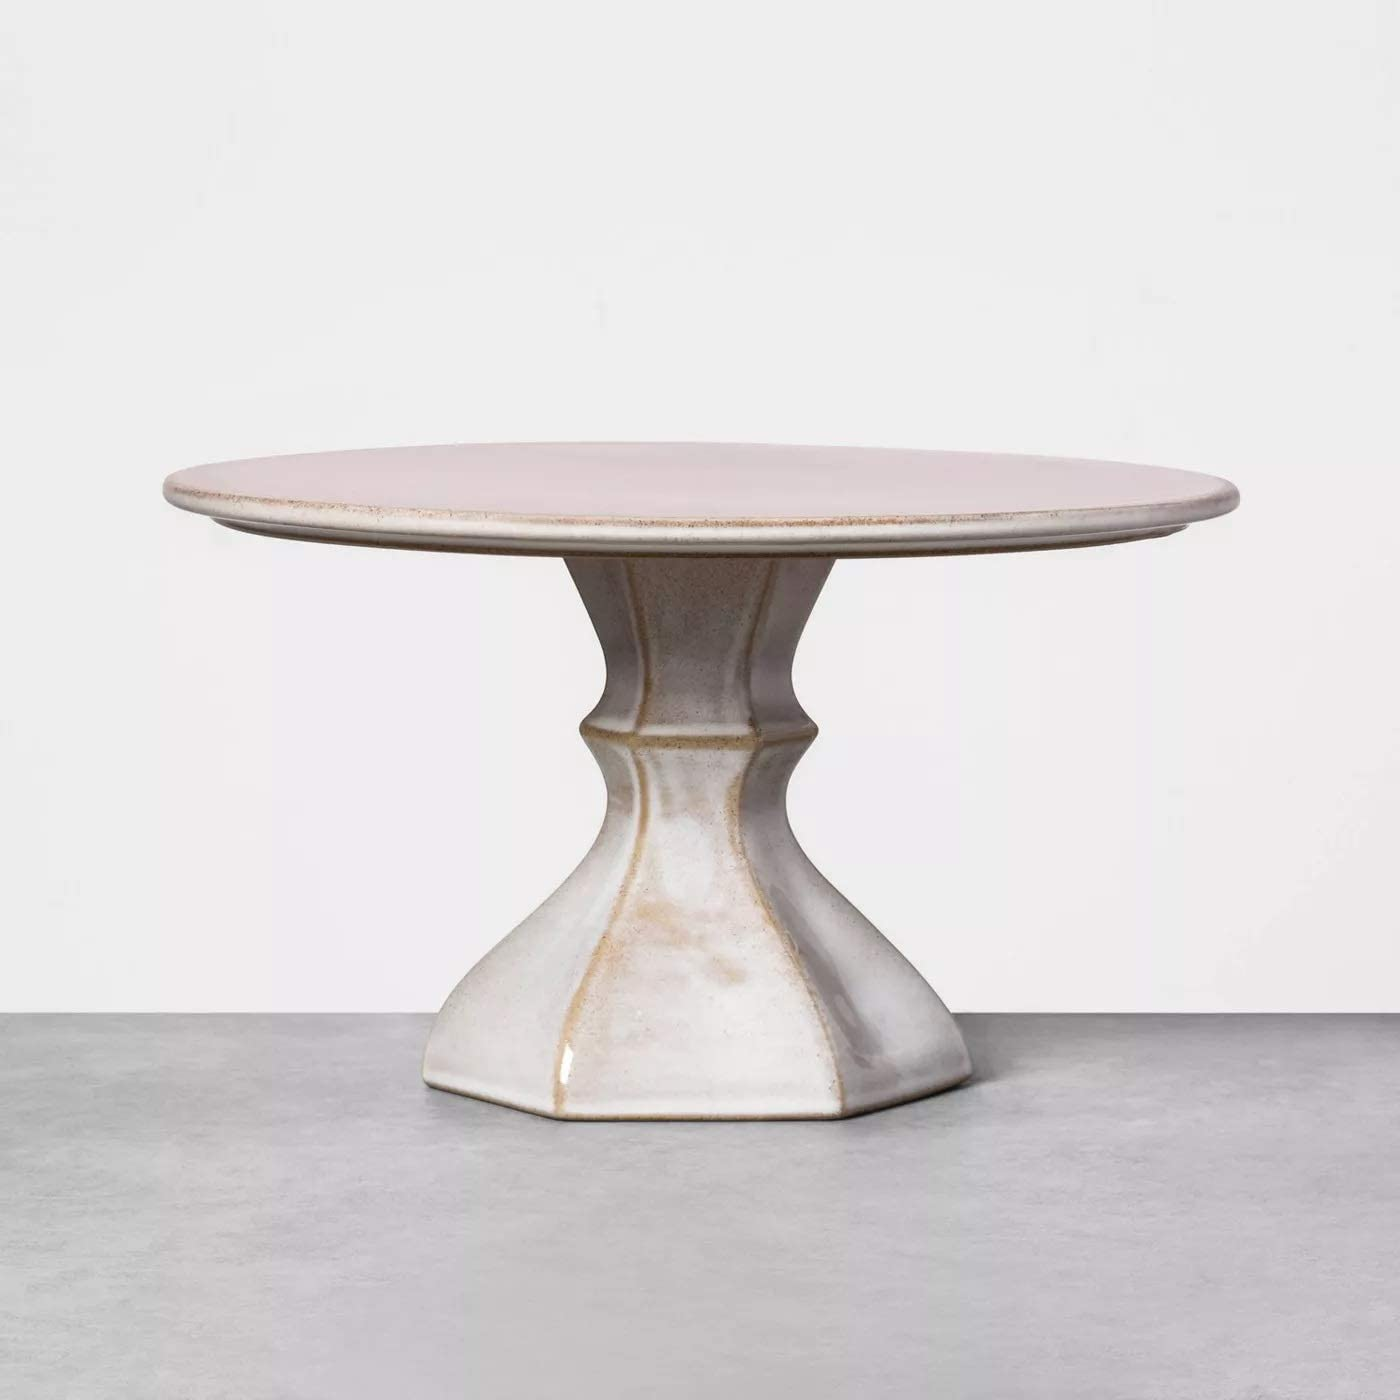 Ceramic Cake Stand Large - Hearth & Hand with Magnolia